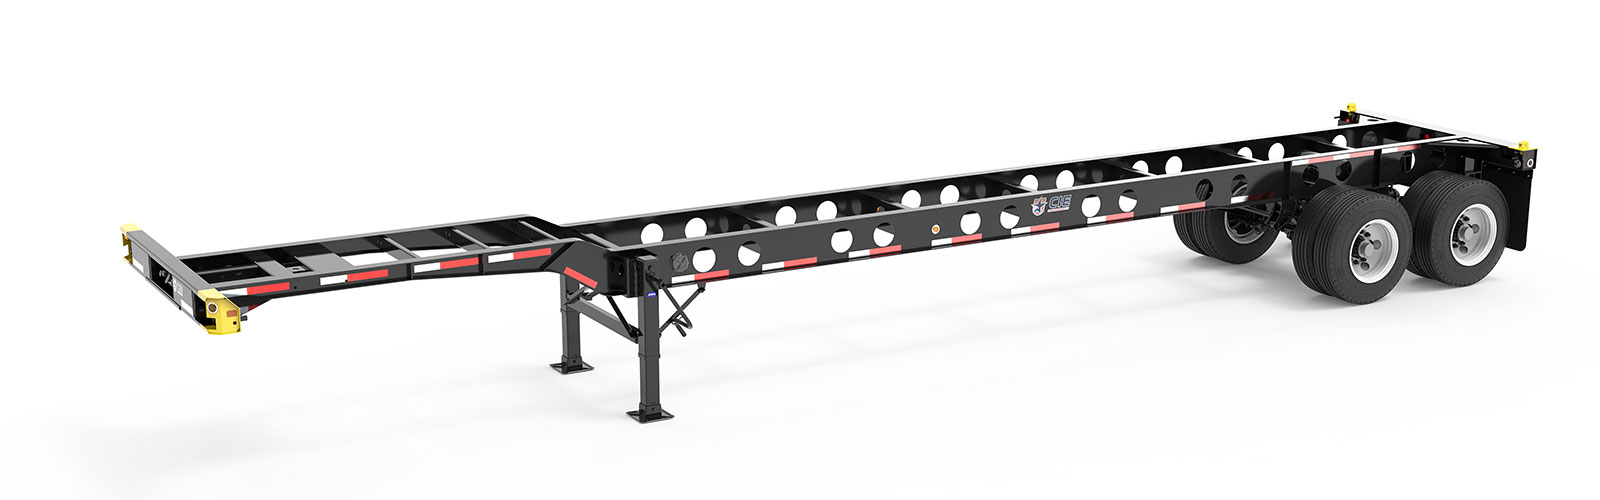 40' Gooseneck Tandem Lightweight Container Chassis Angle View Final